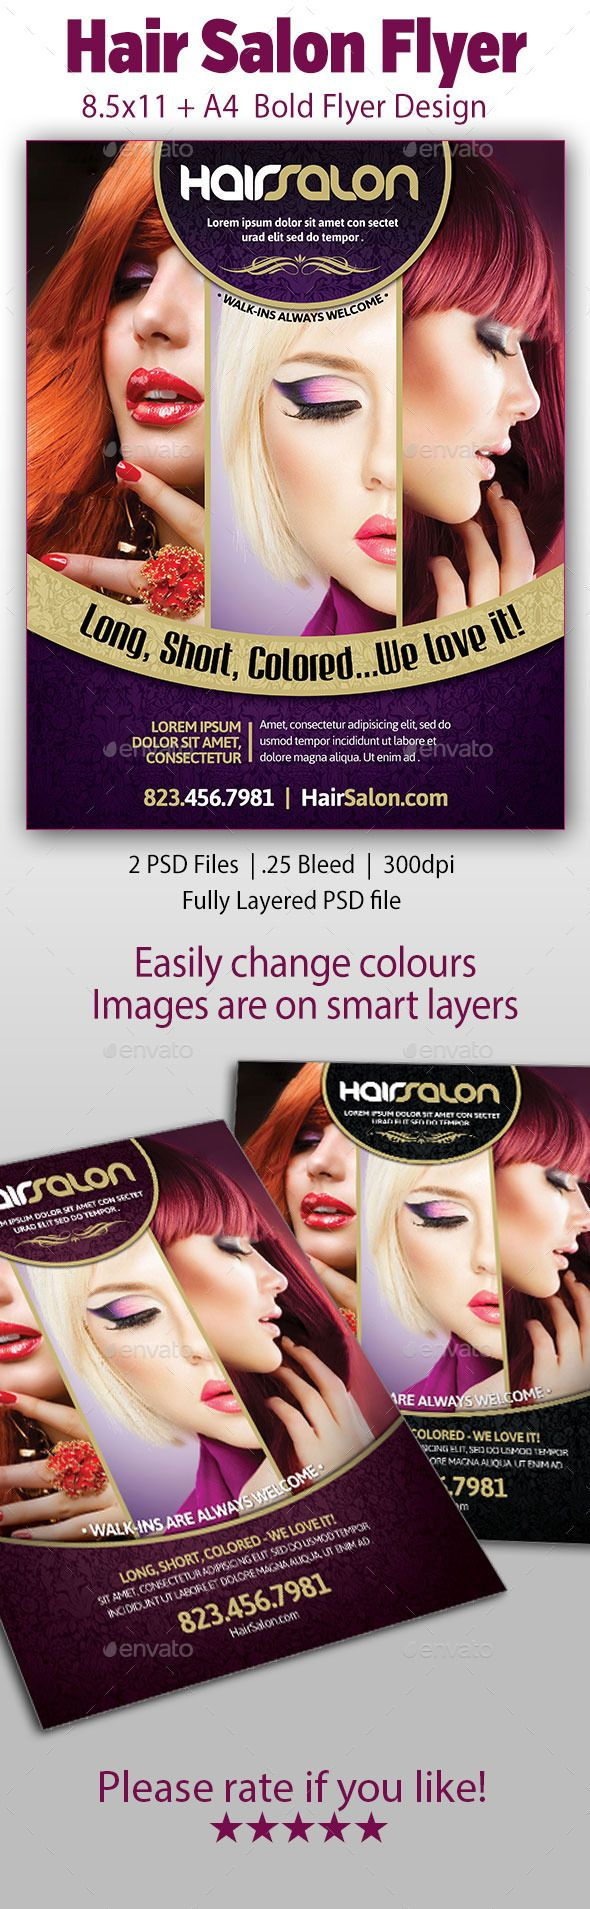 Hair Salon Flyer Bold Flyer Design Is Great For Not Only Hair Salons